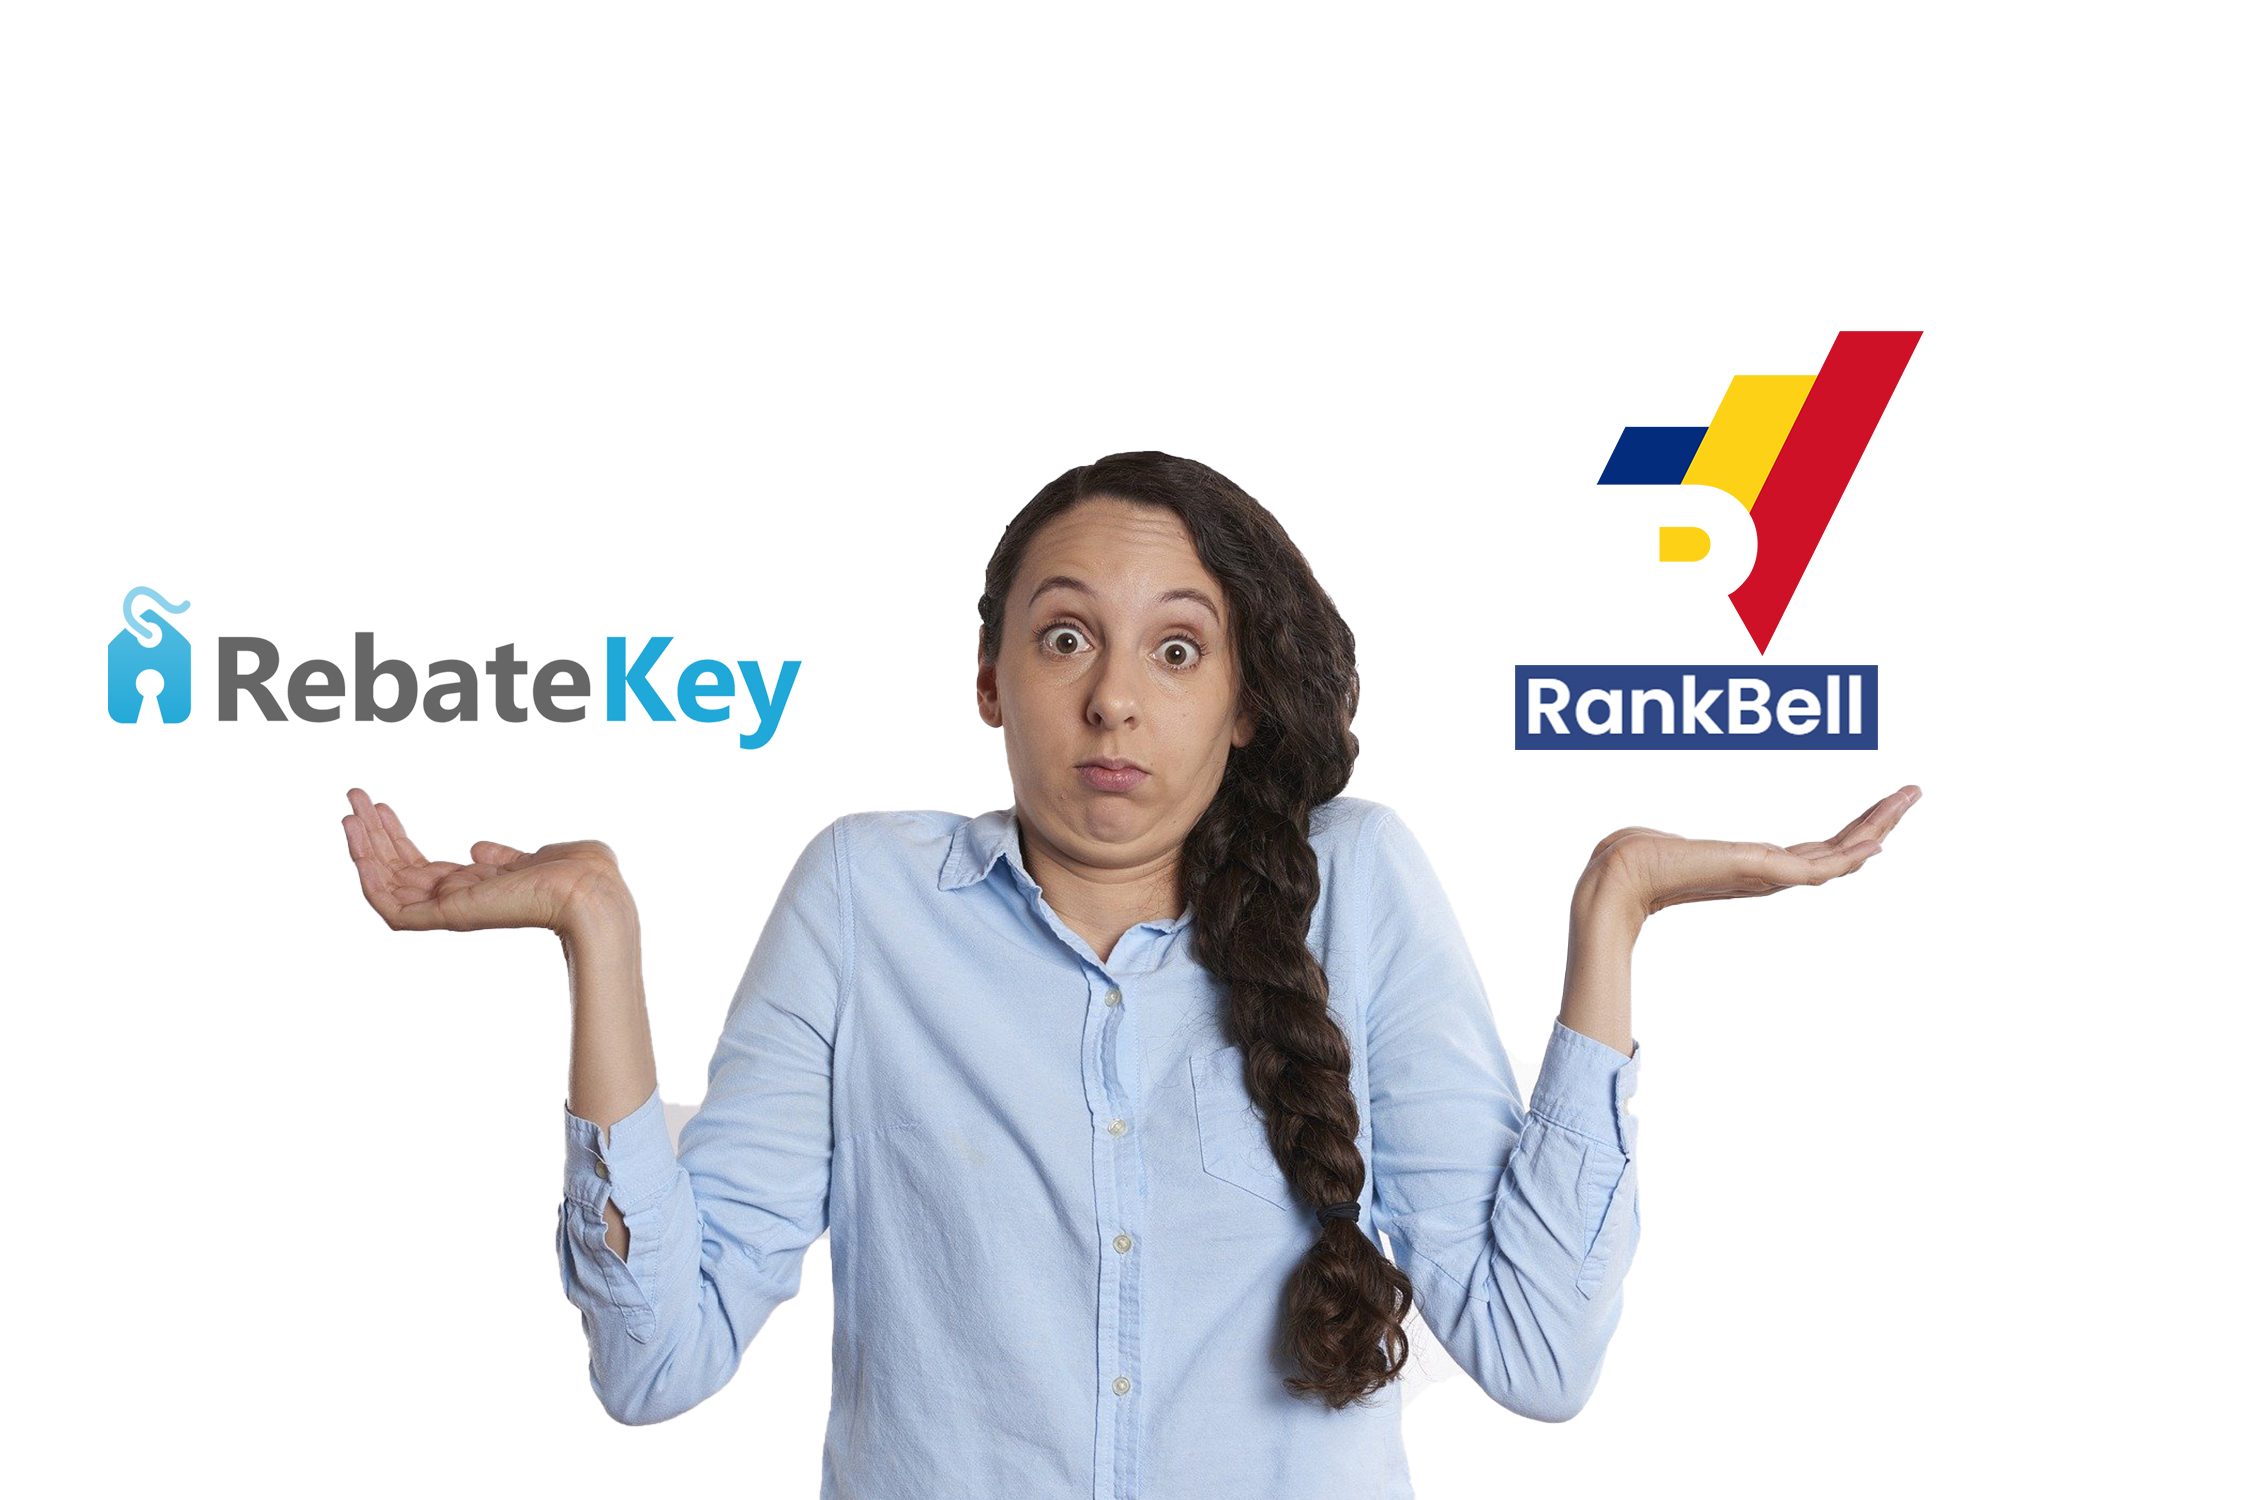 Rebatekey vs RankBell